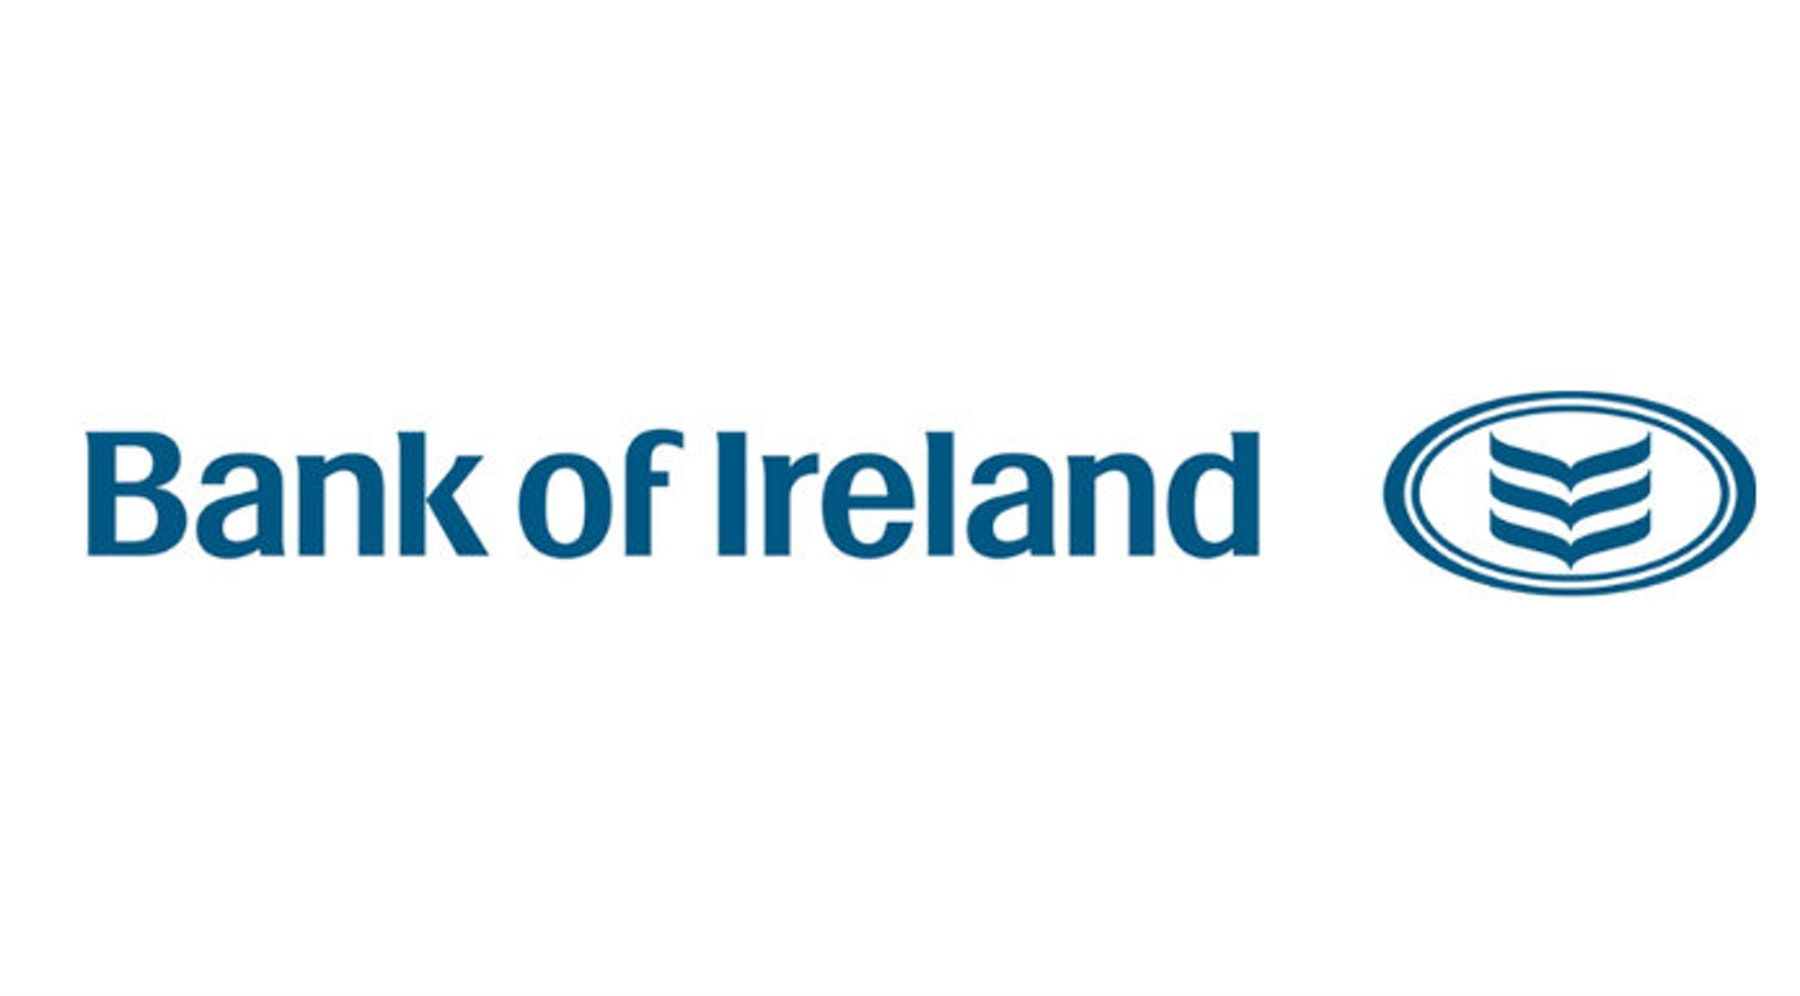 Glantus Present at Bank of Ireland's Inaugural 'Analytics Connect' Event